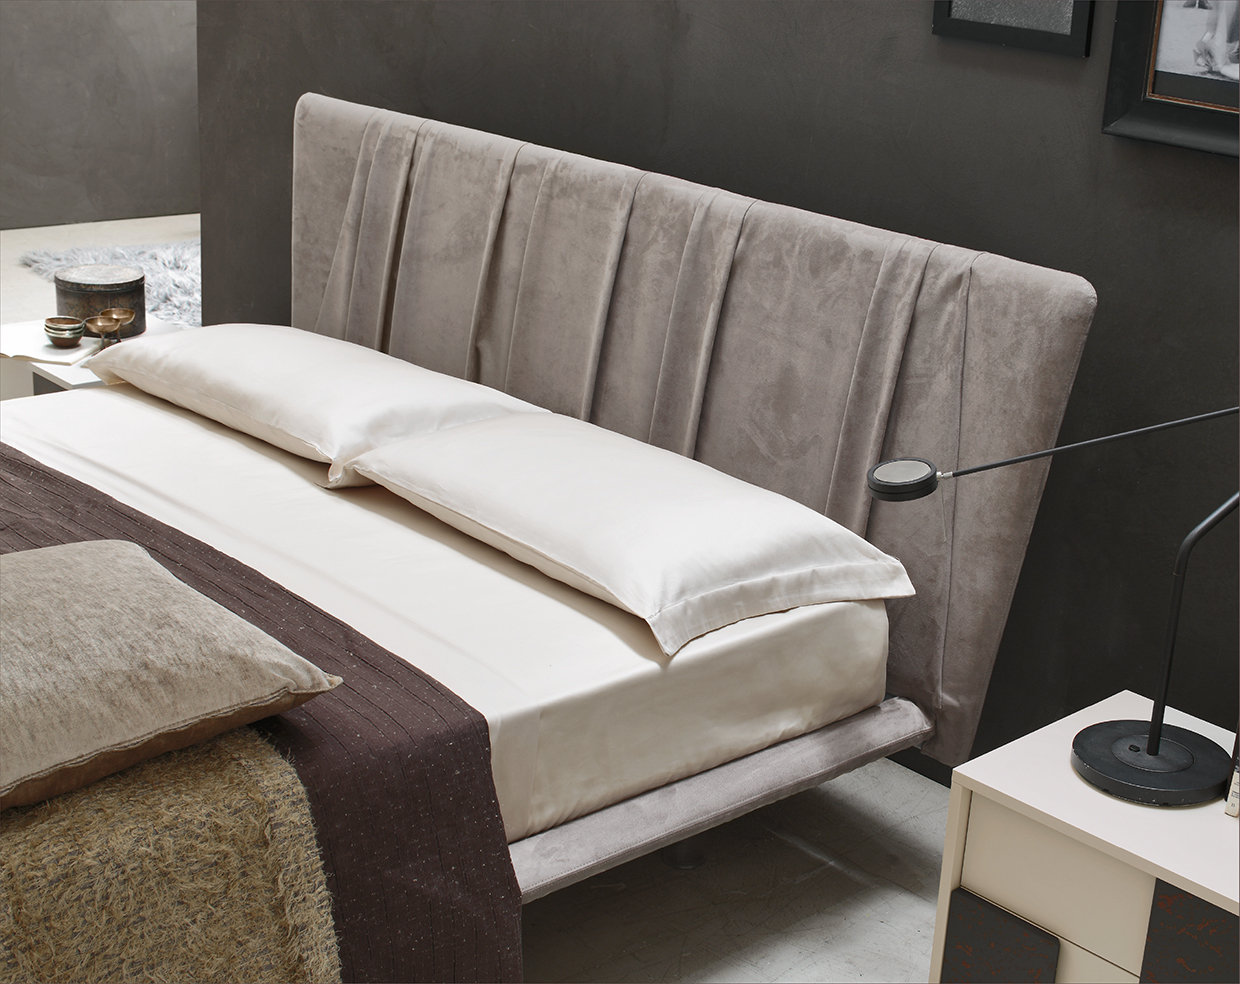 The velvety effect of the nubuck envelopes the bed and the space. The exclusive pleating technique used elegantly interprets oldfashioned style creating a classy headboard.